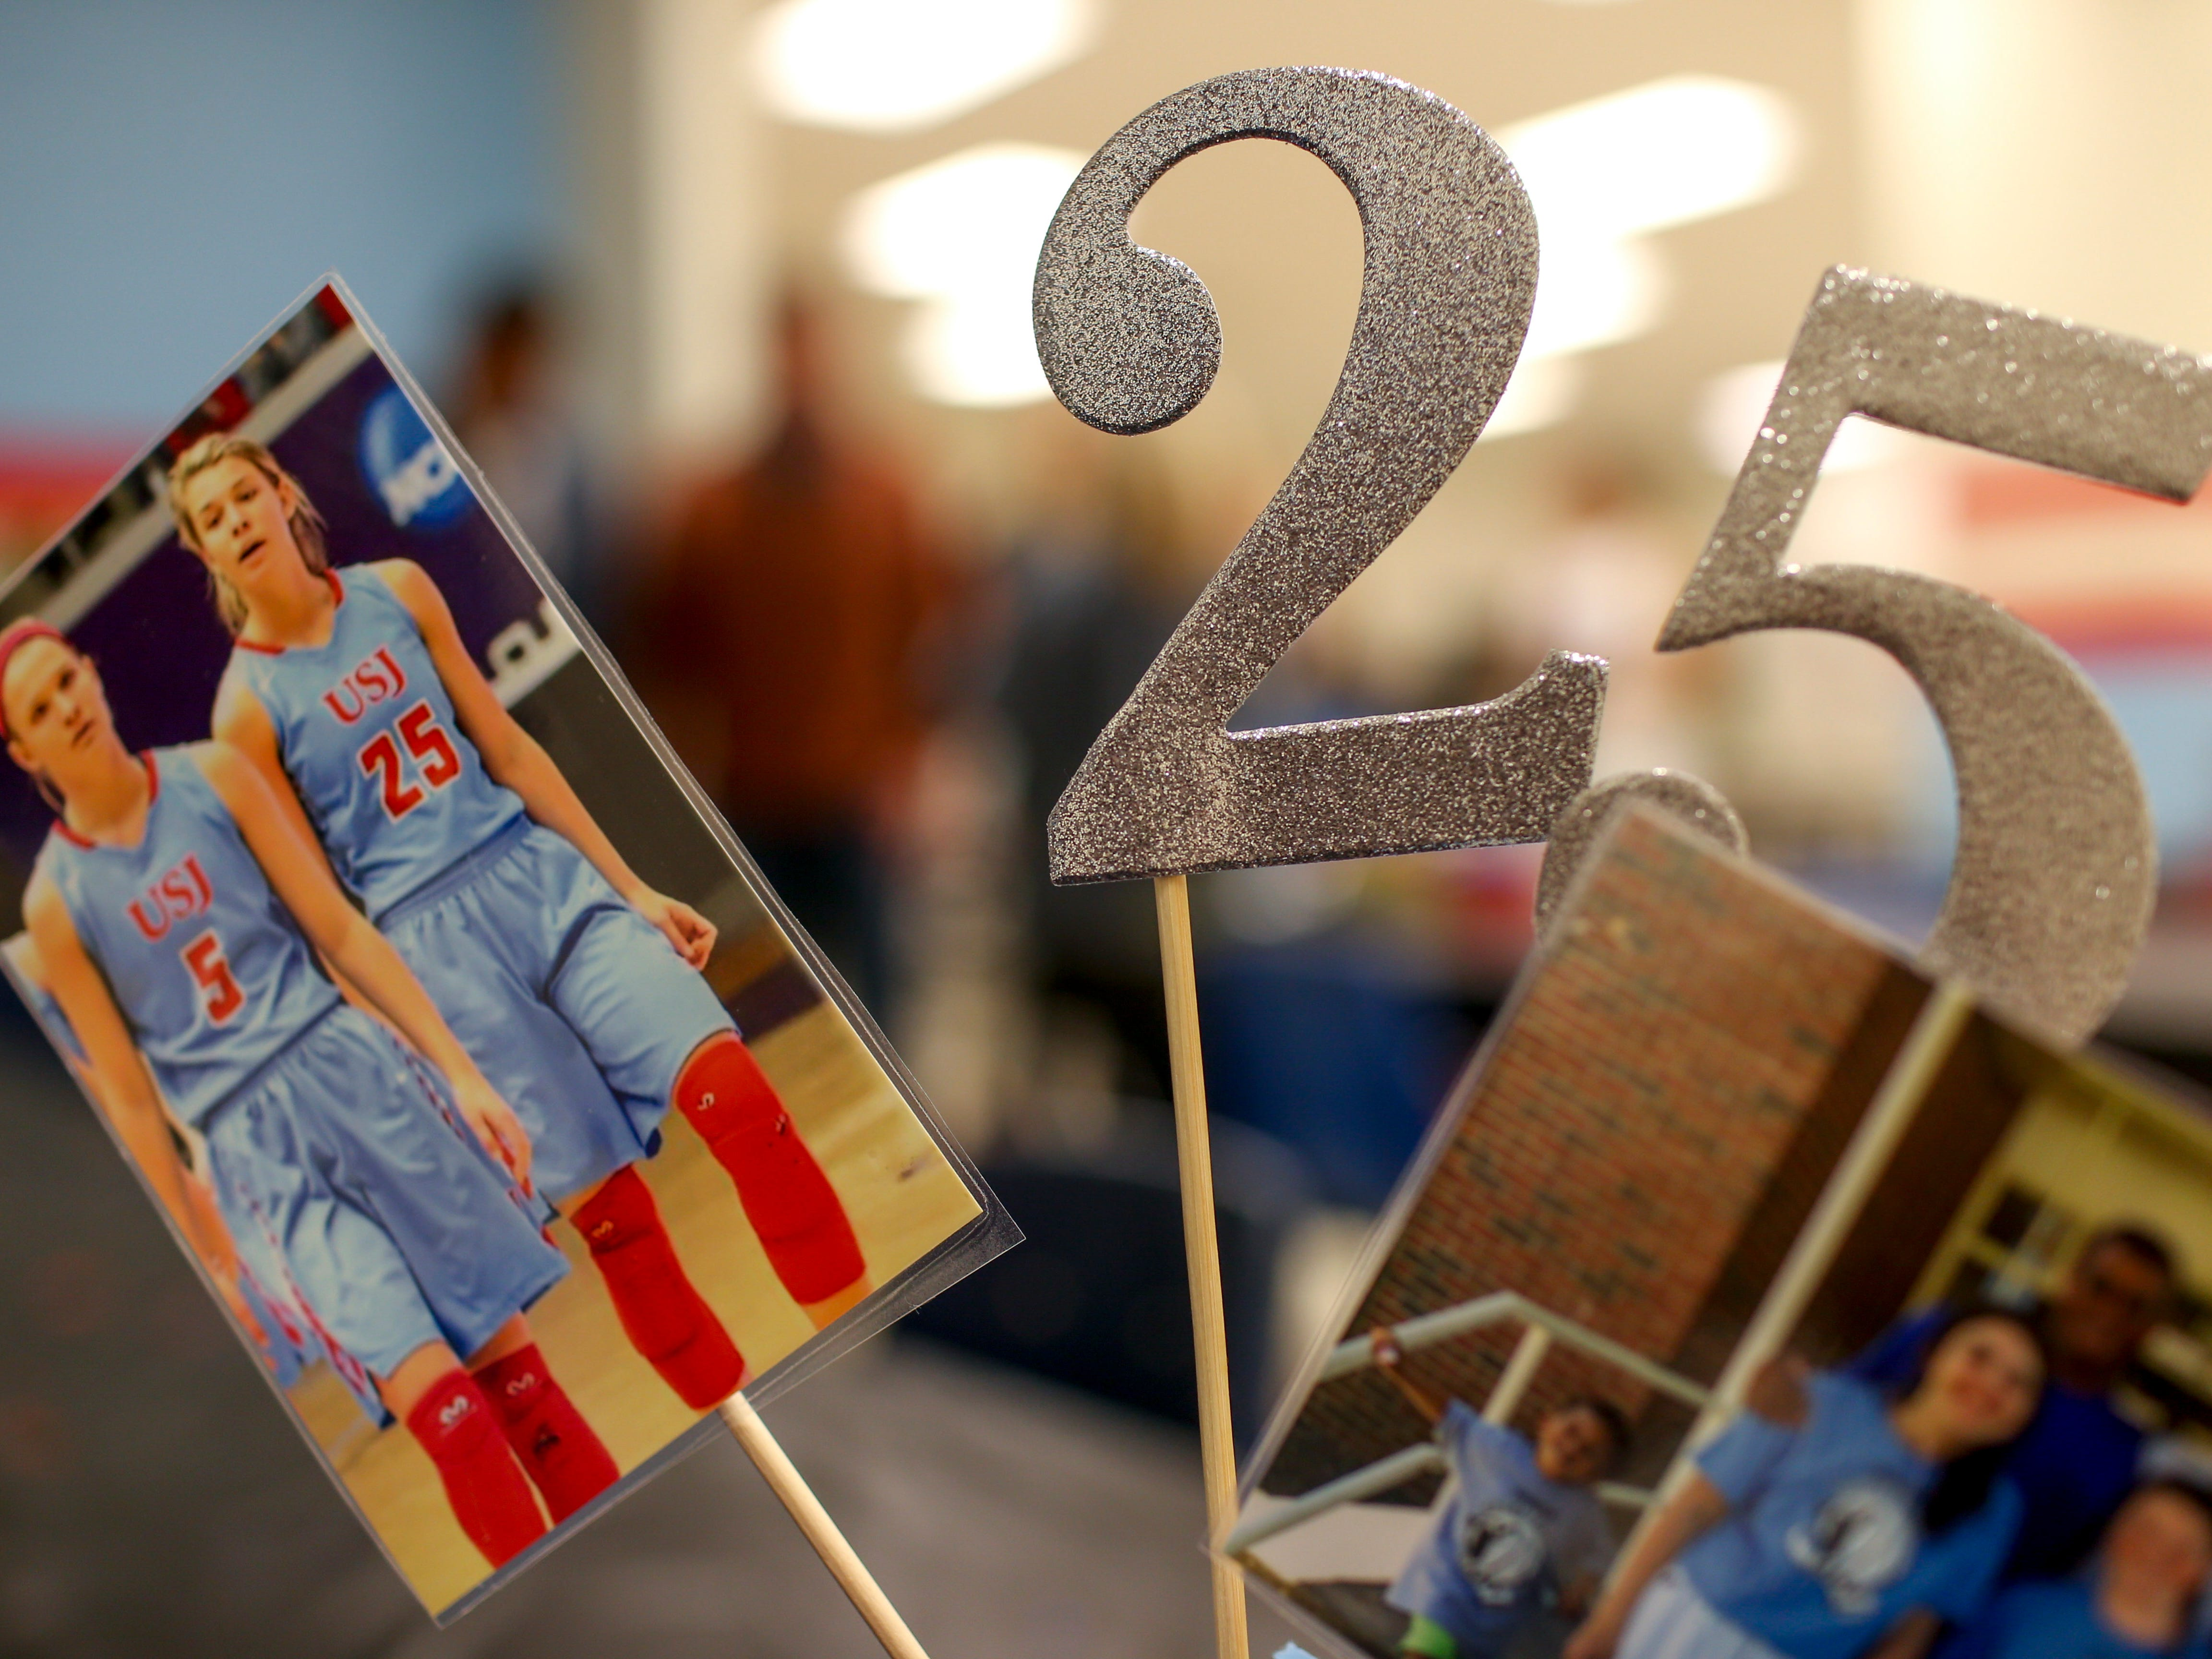 Decorations with the number 25 and old photos of Anna Jones were displayed during the retirement of Jones' old jersey number 25 at University School of Jackson in Jackson, Tenn., on Friday, Dec. 7, 2018.